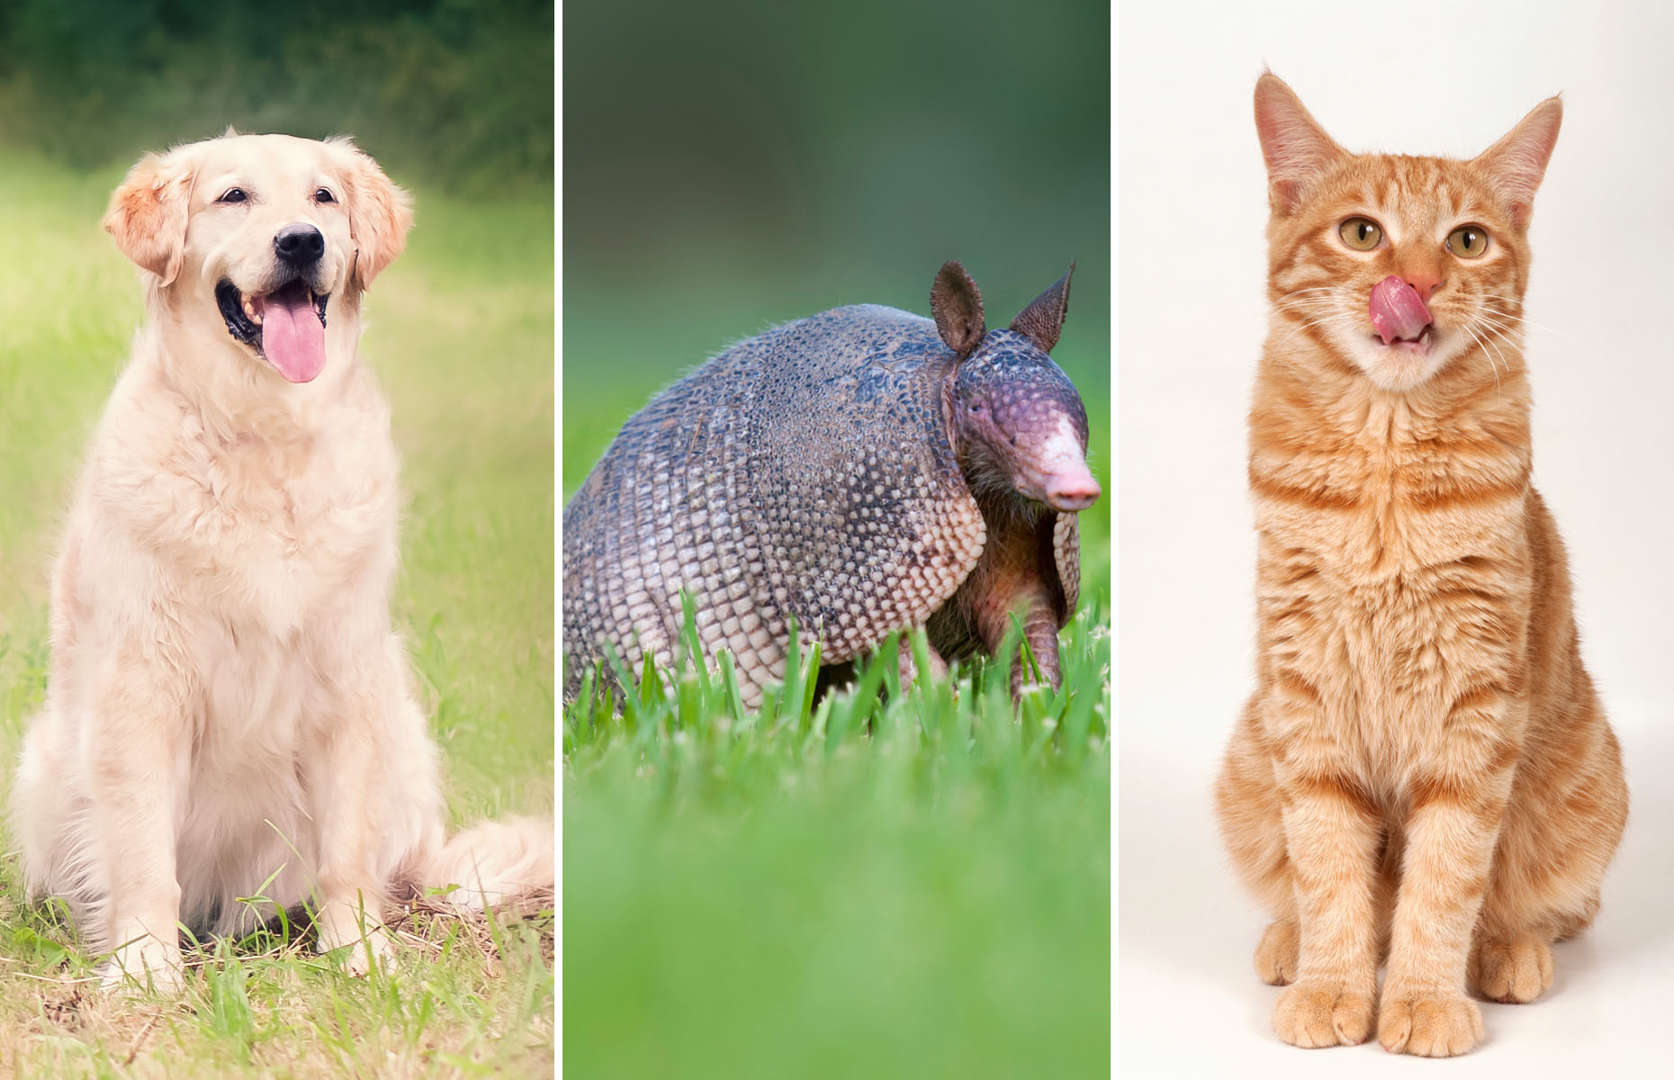 db8e5718 Bad blood: Animals that can infect humans